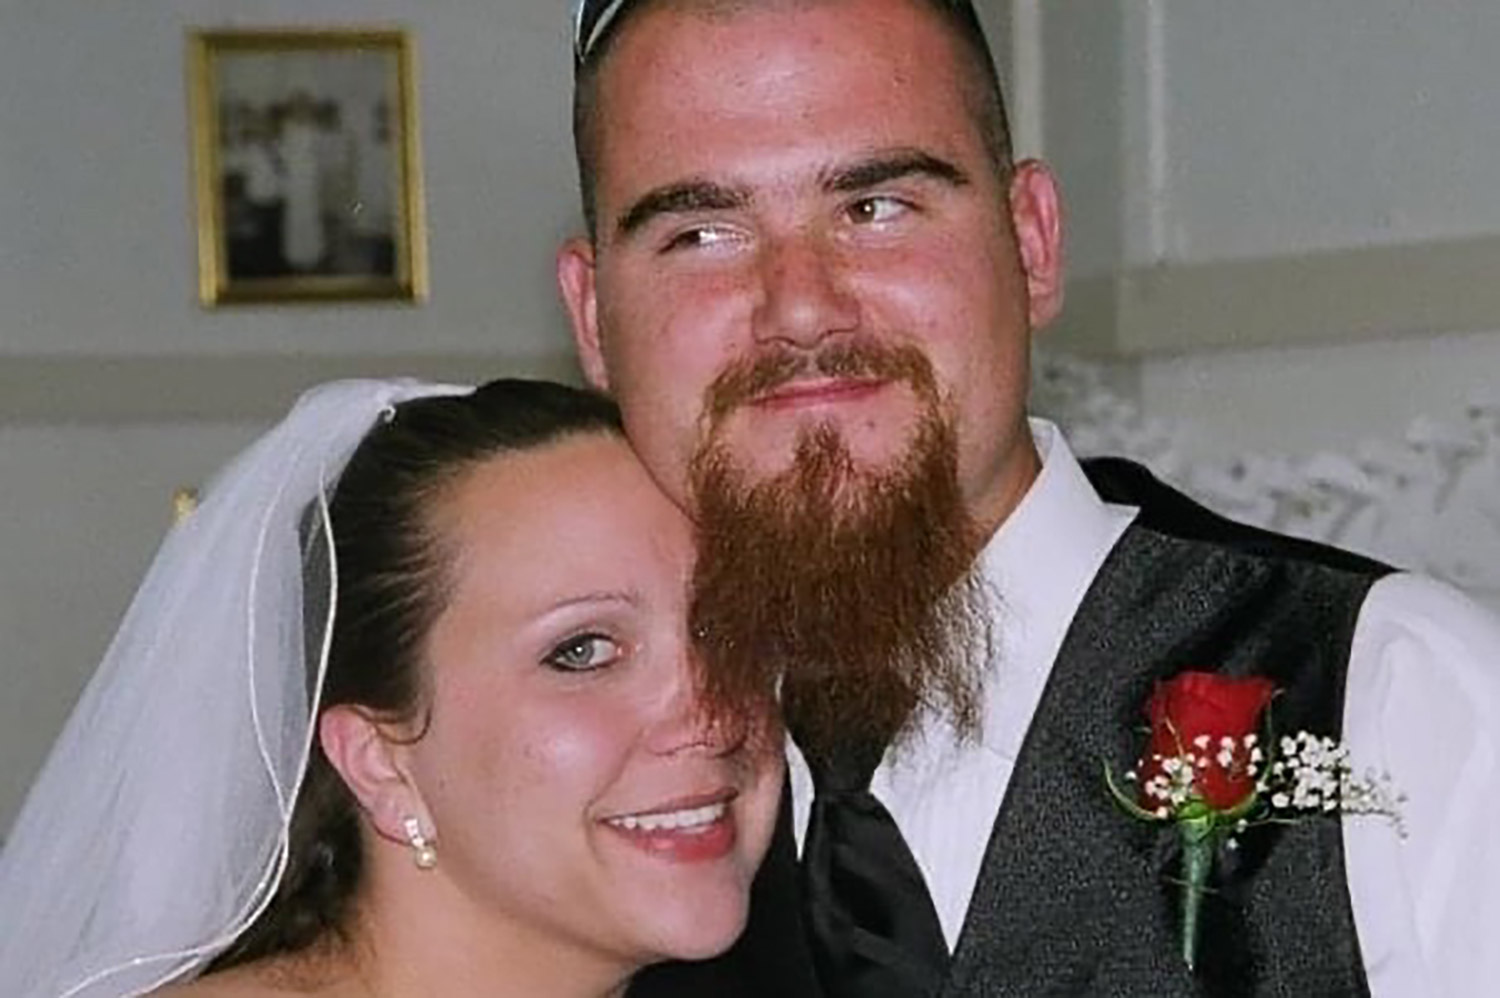 Jessica Woodruff, 45, and Jake Woodruff, 36, leave behind five children: Megan, Evan, Casey, Allie, and Chelsea